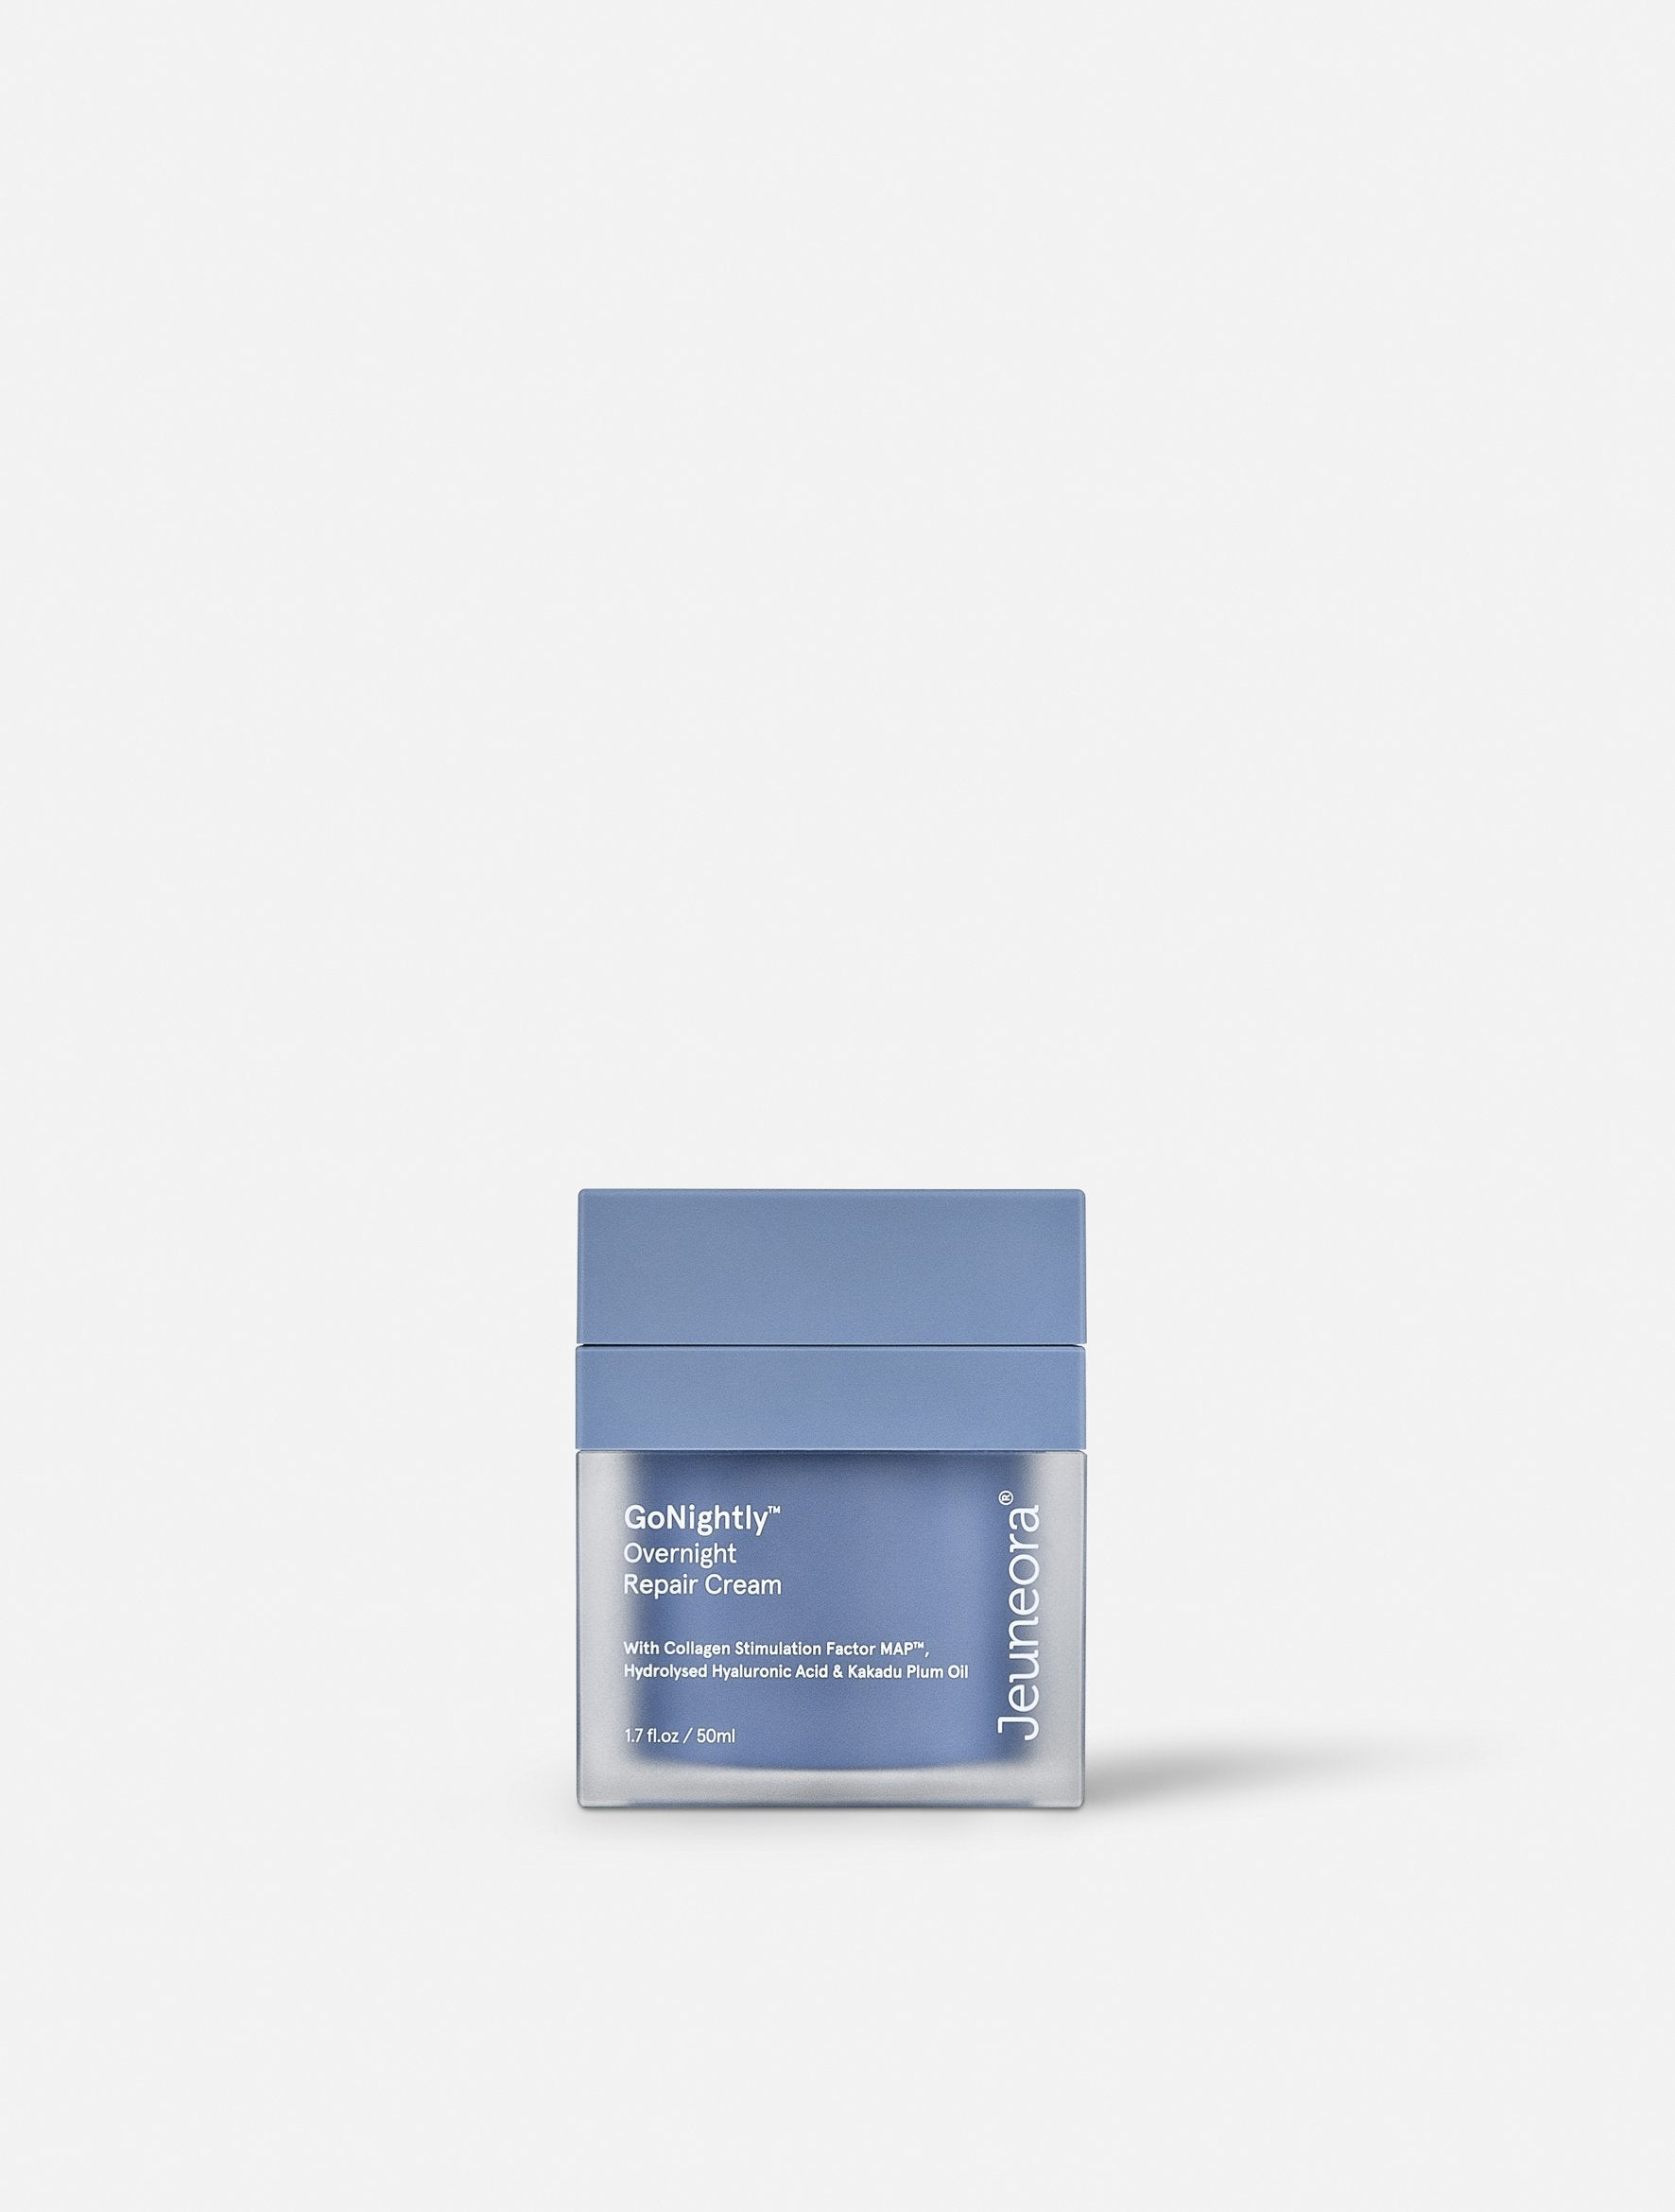 Jeuneora GoNightly™ Overnight Repair Cream